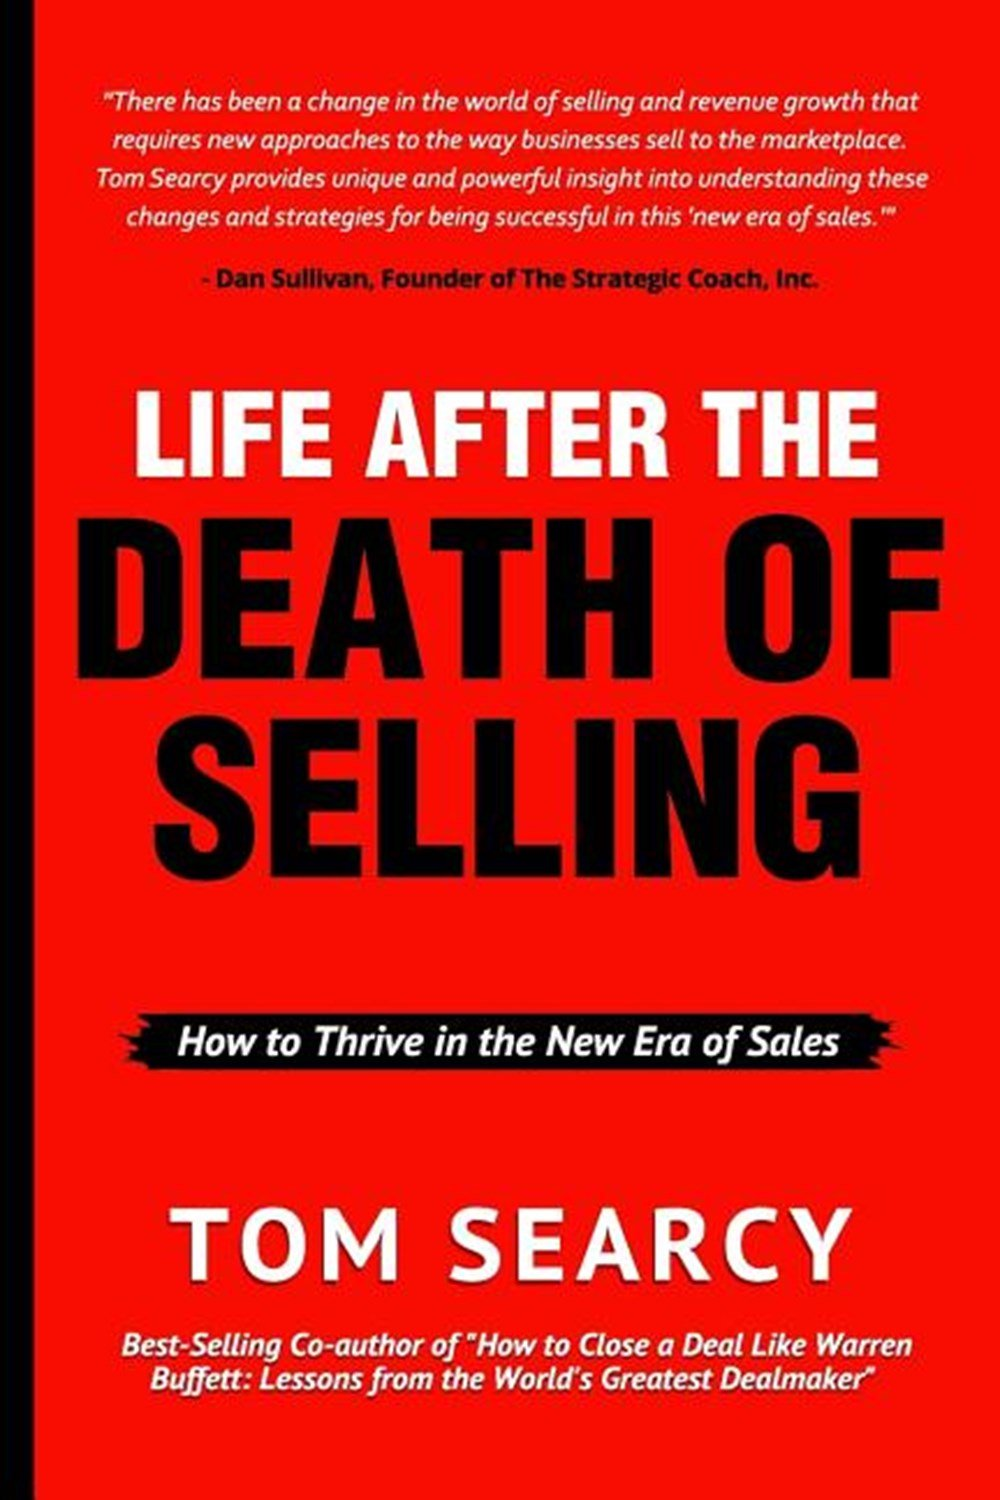 Life After the Death of Selling How to Thrive in the New Era of Sales